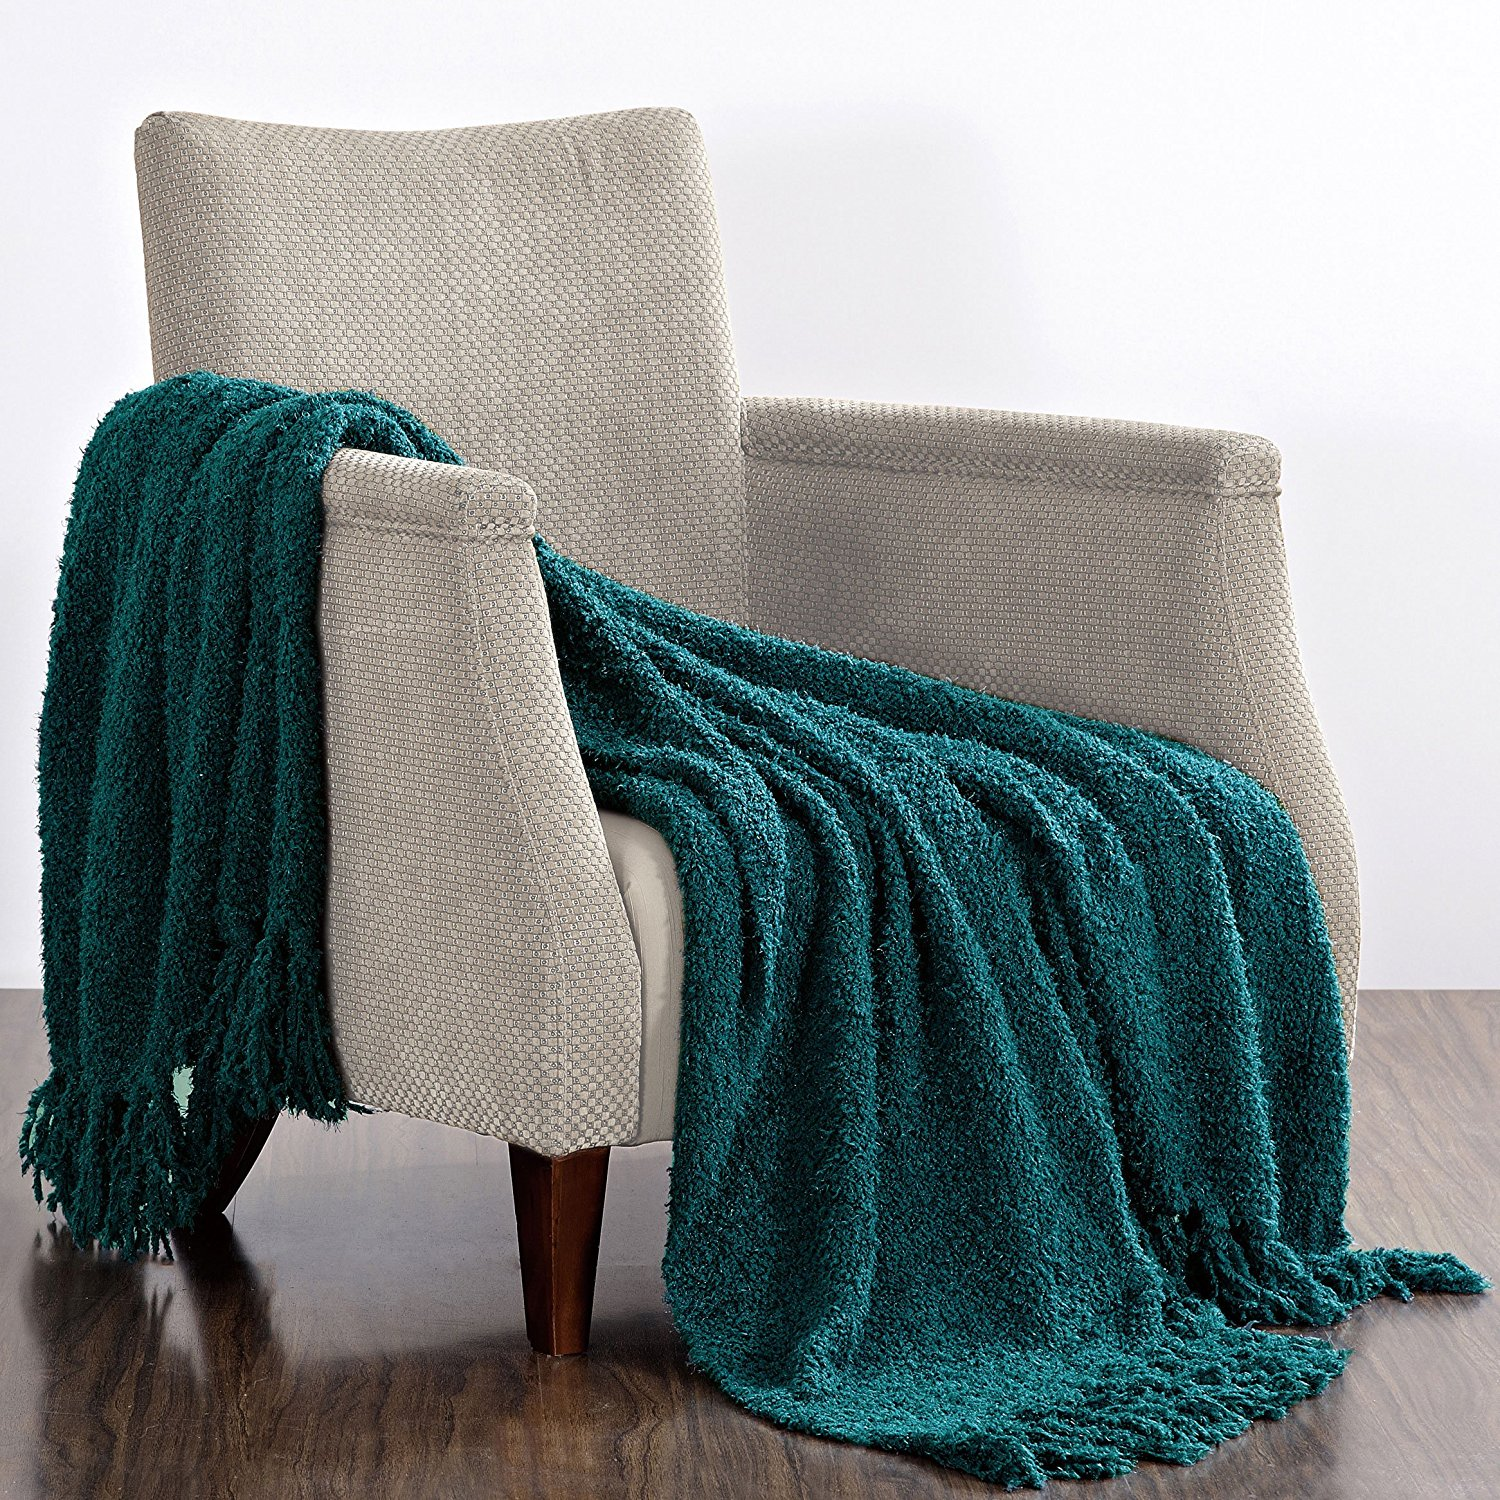 teal-throw-blanket-05